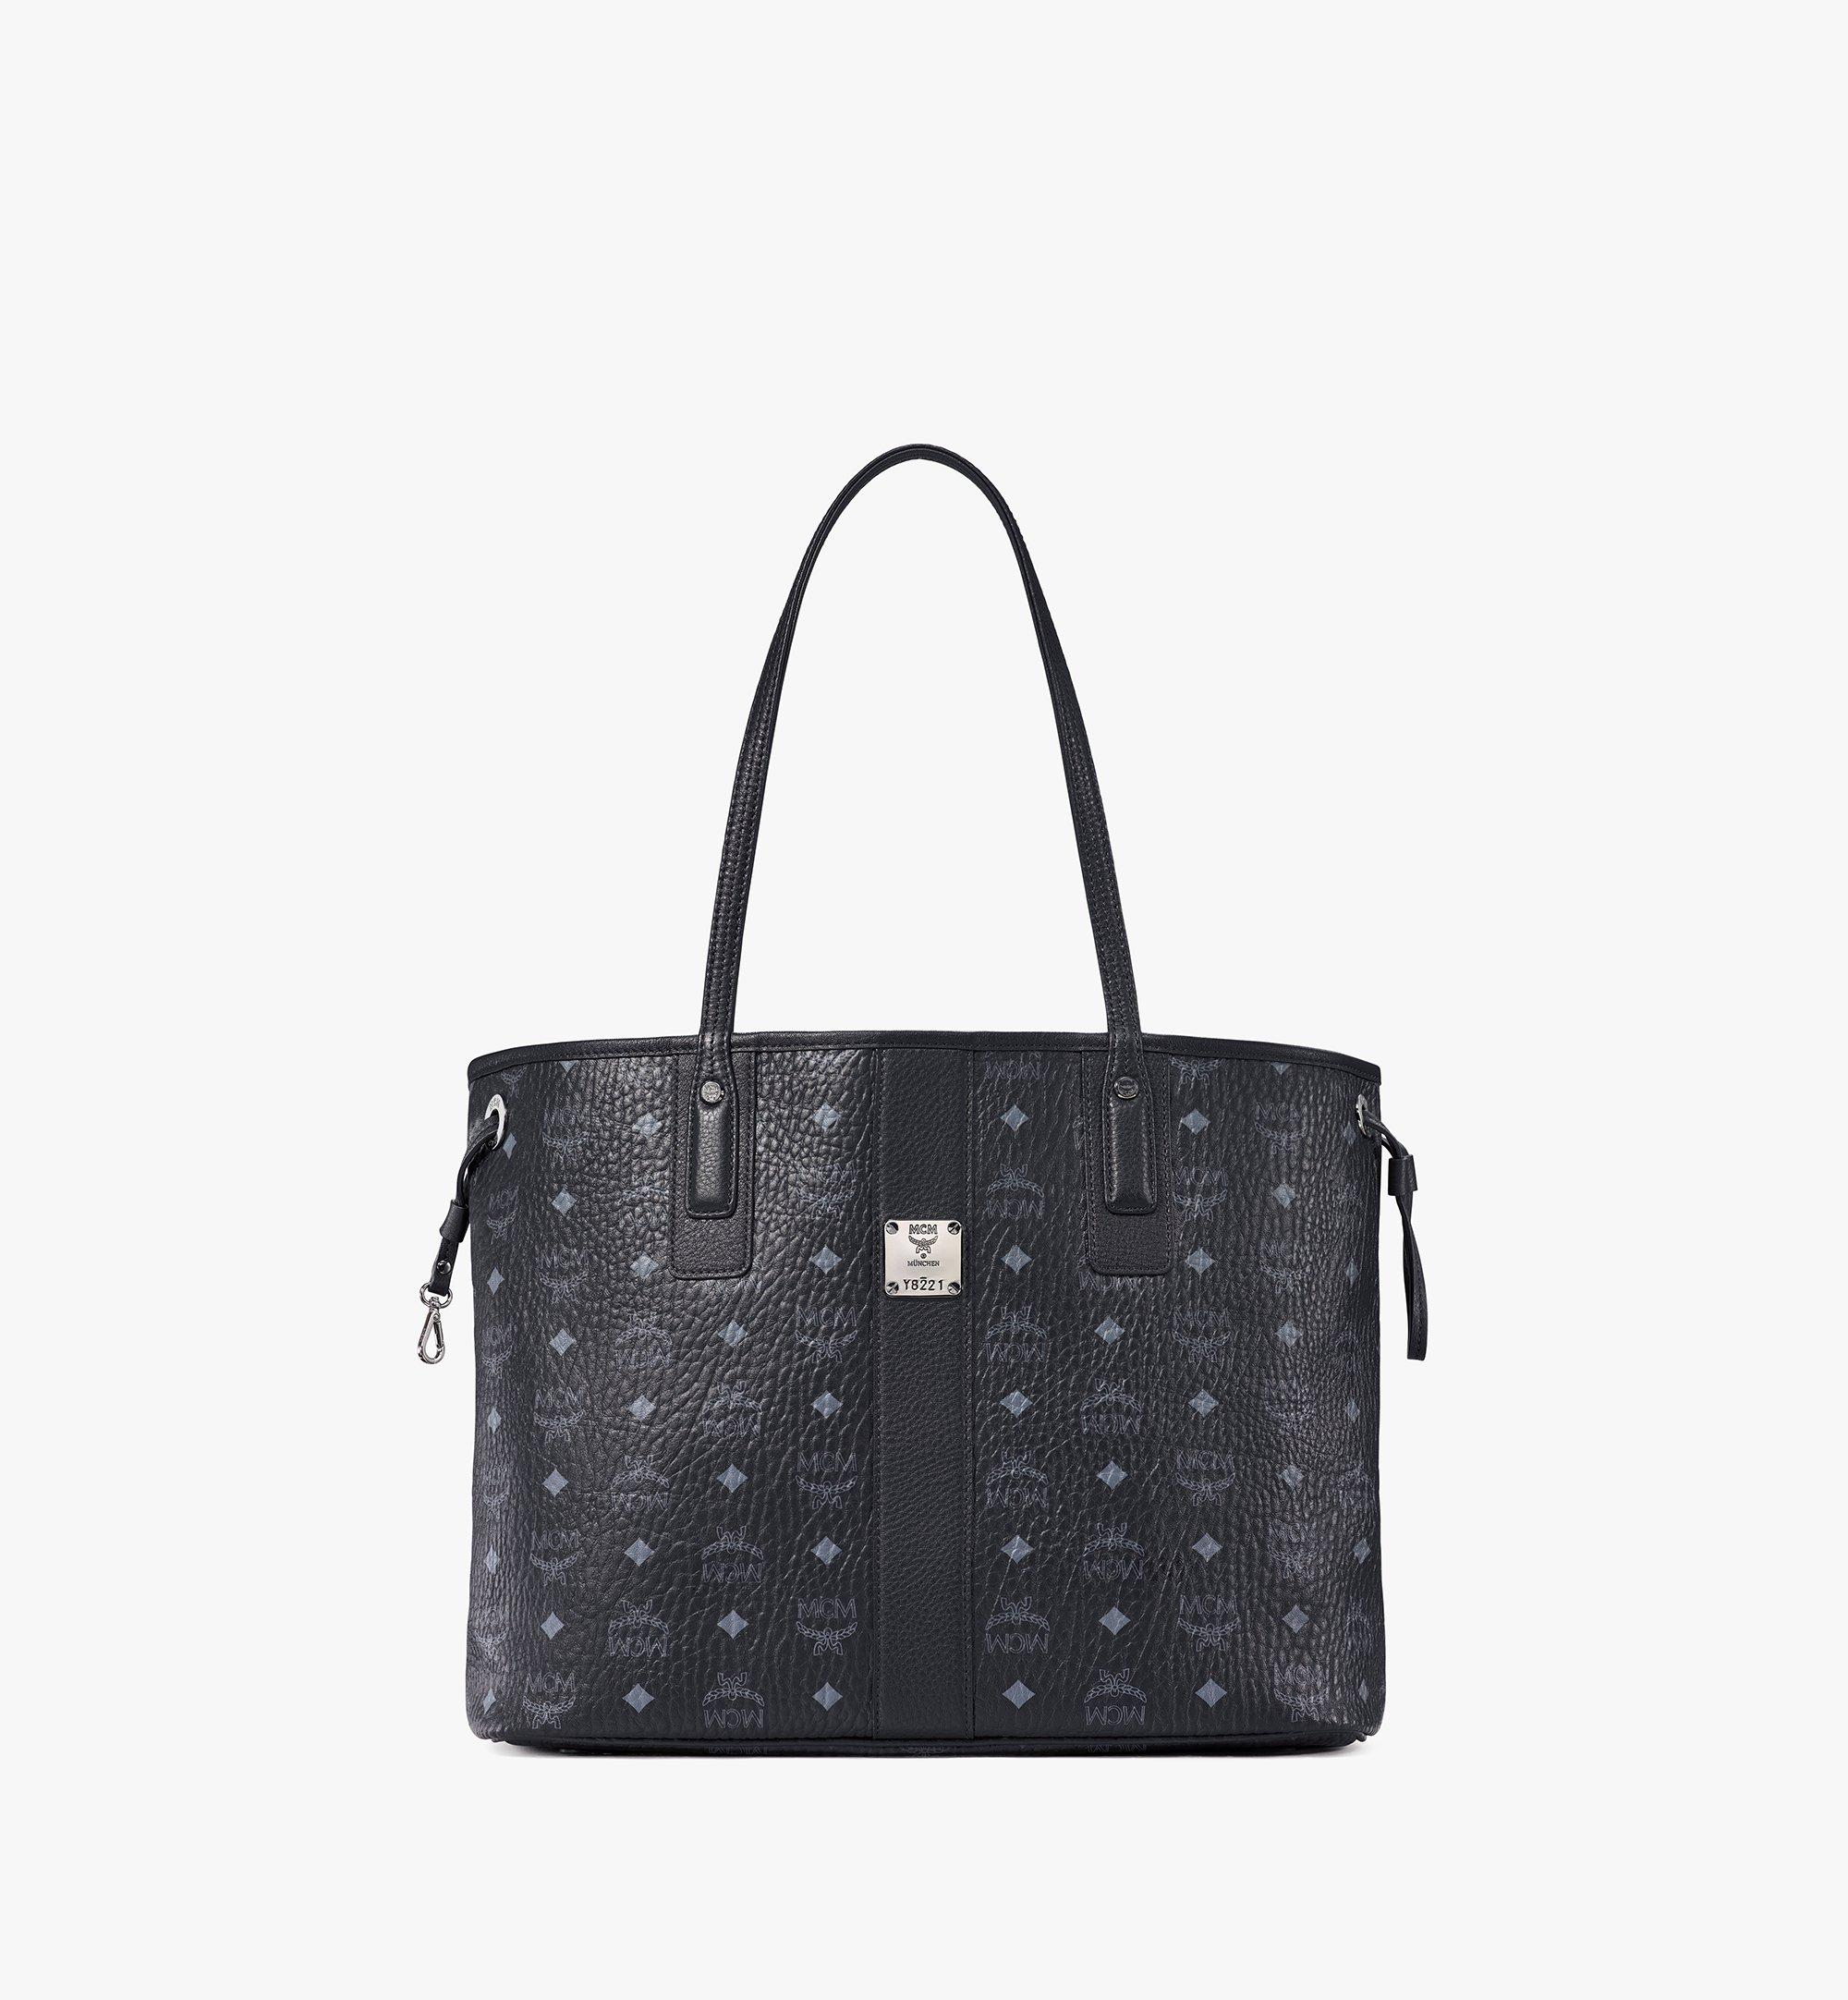 Medium Reversible Liz Shopper in Visetos Black | MCM® DE